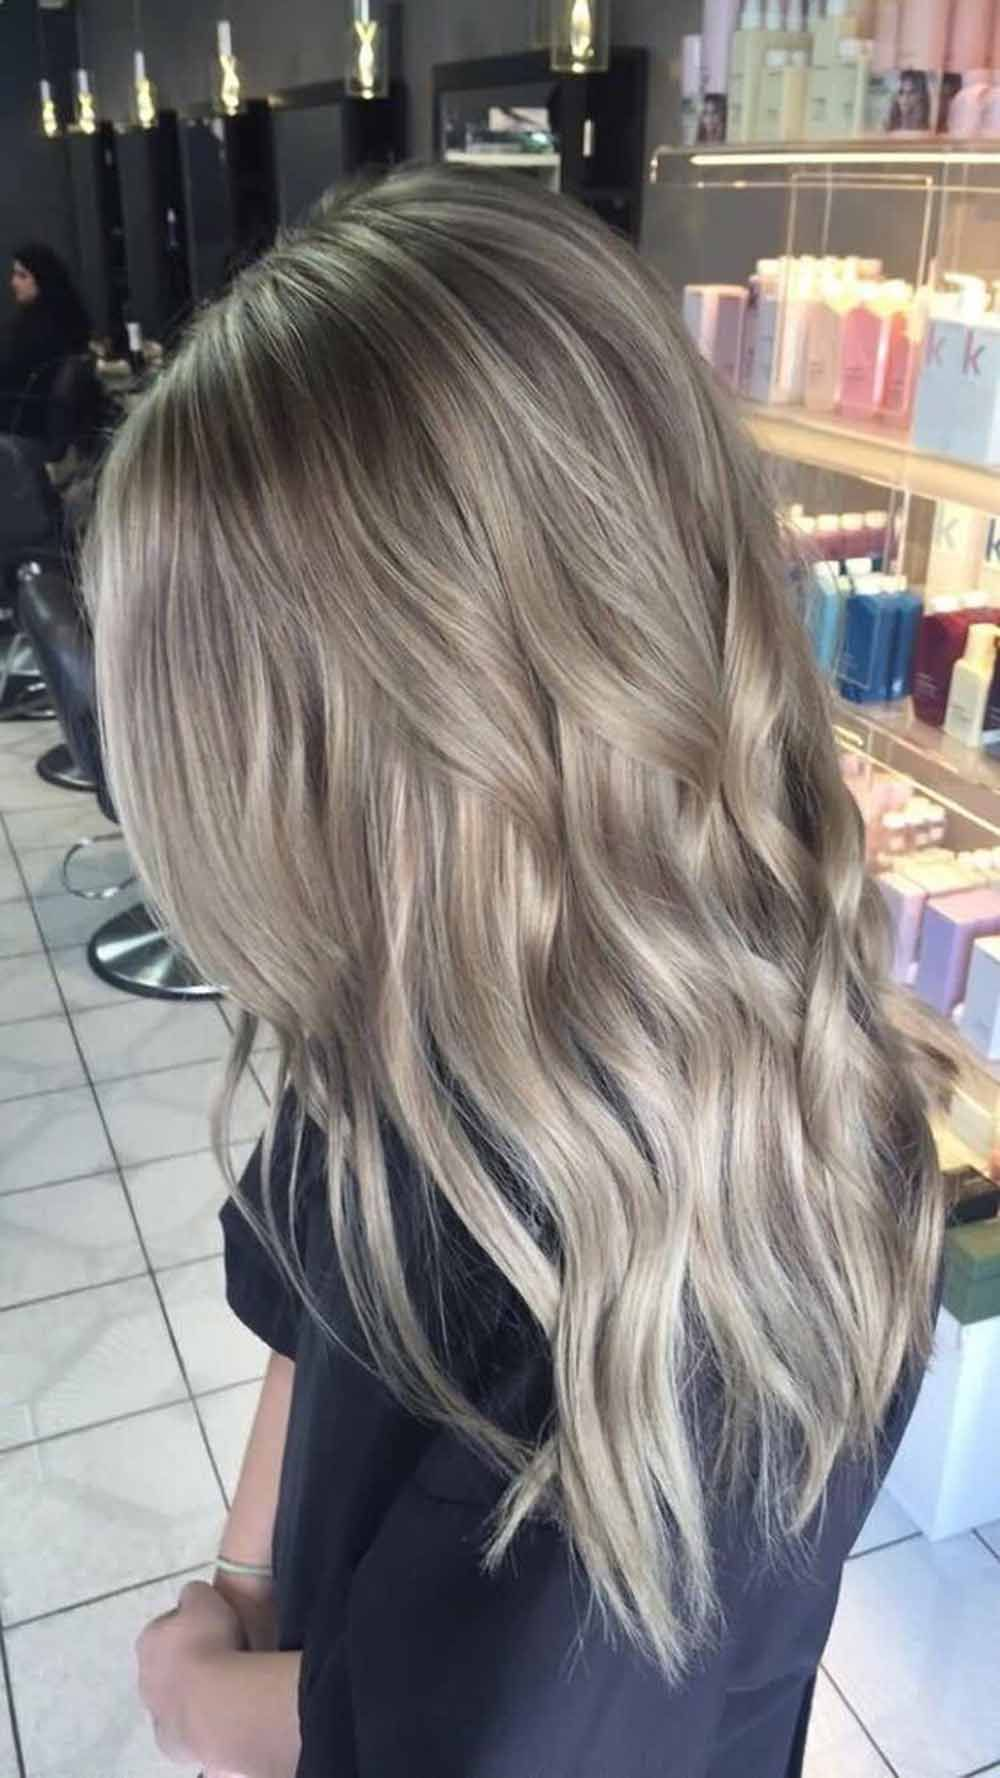 15 Ash Blonde Hair Color Ideas To Show Off Fabulous Blonde Hair